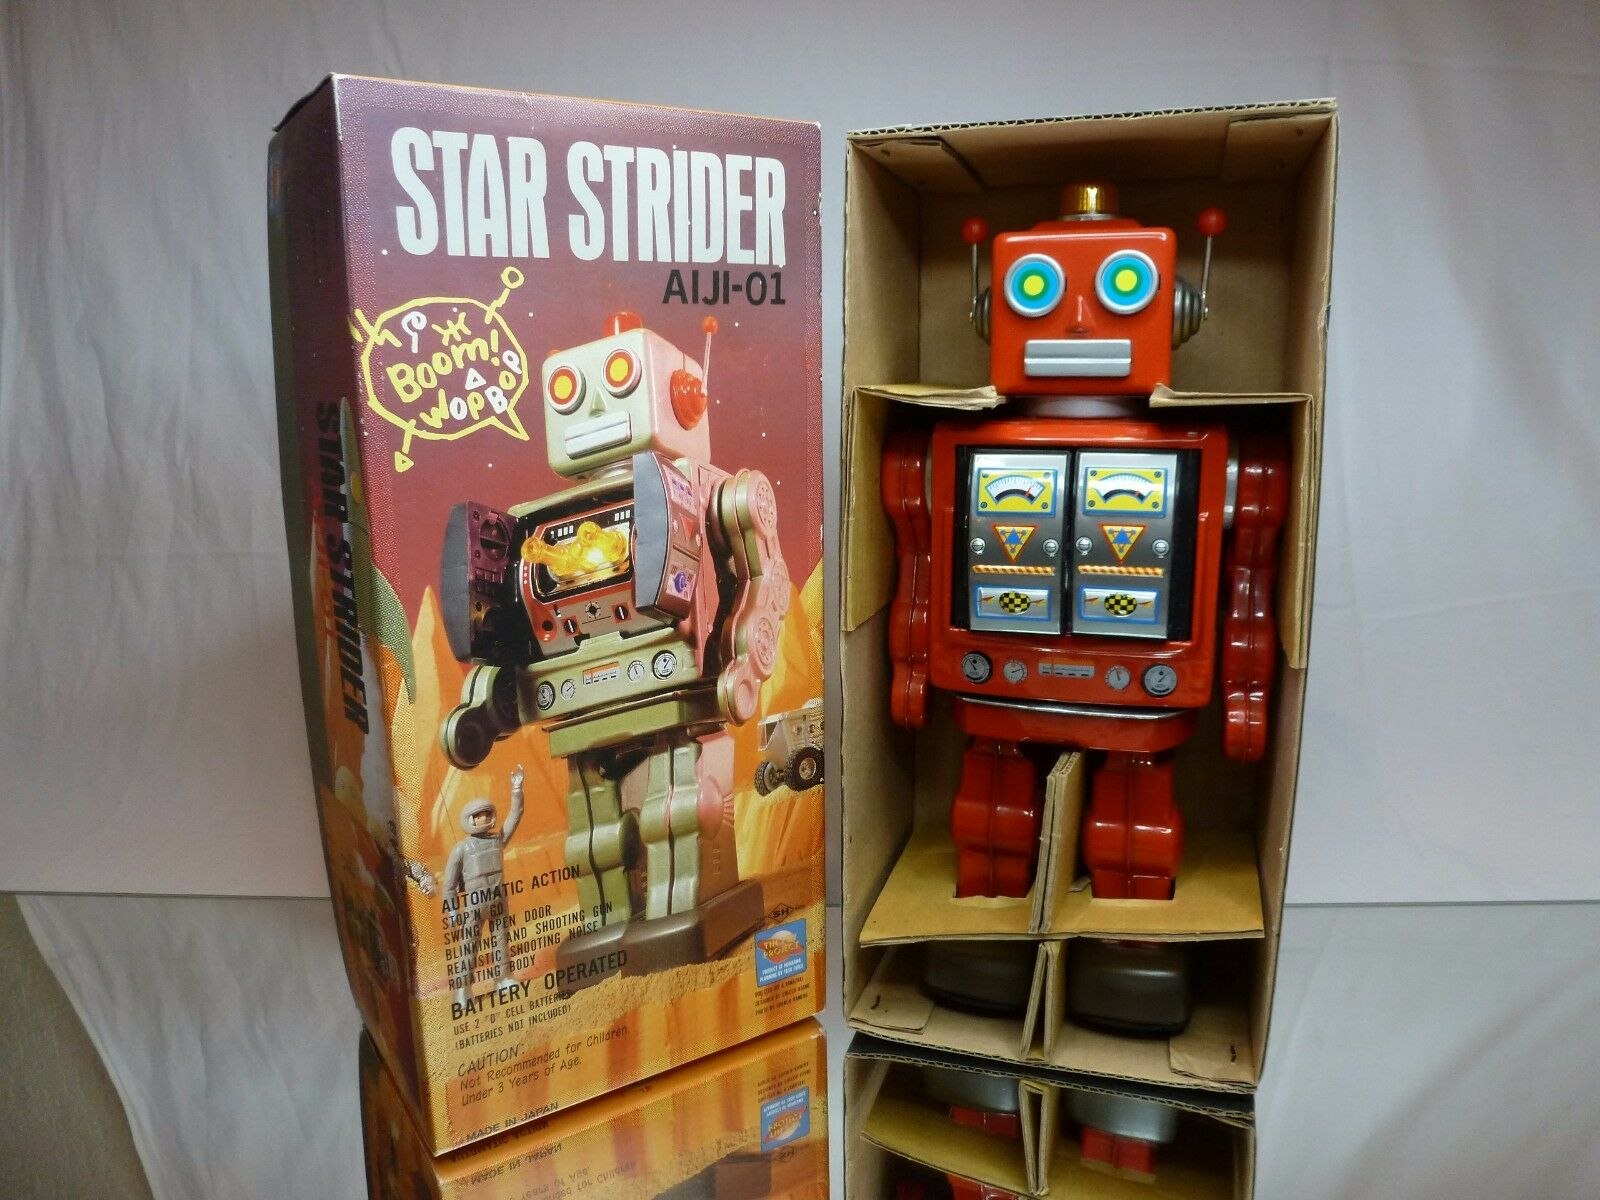 HORIKAWA SH AIJI-01 ROBOT STAR STAR STAR STRIDER - Rojo L31.0cm BATTERY - EXCELLENT IN BOX 9bd3c9